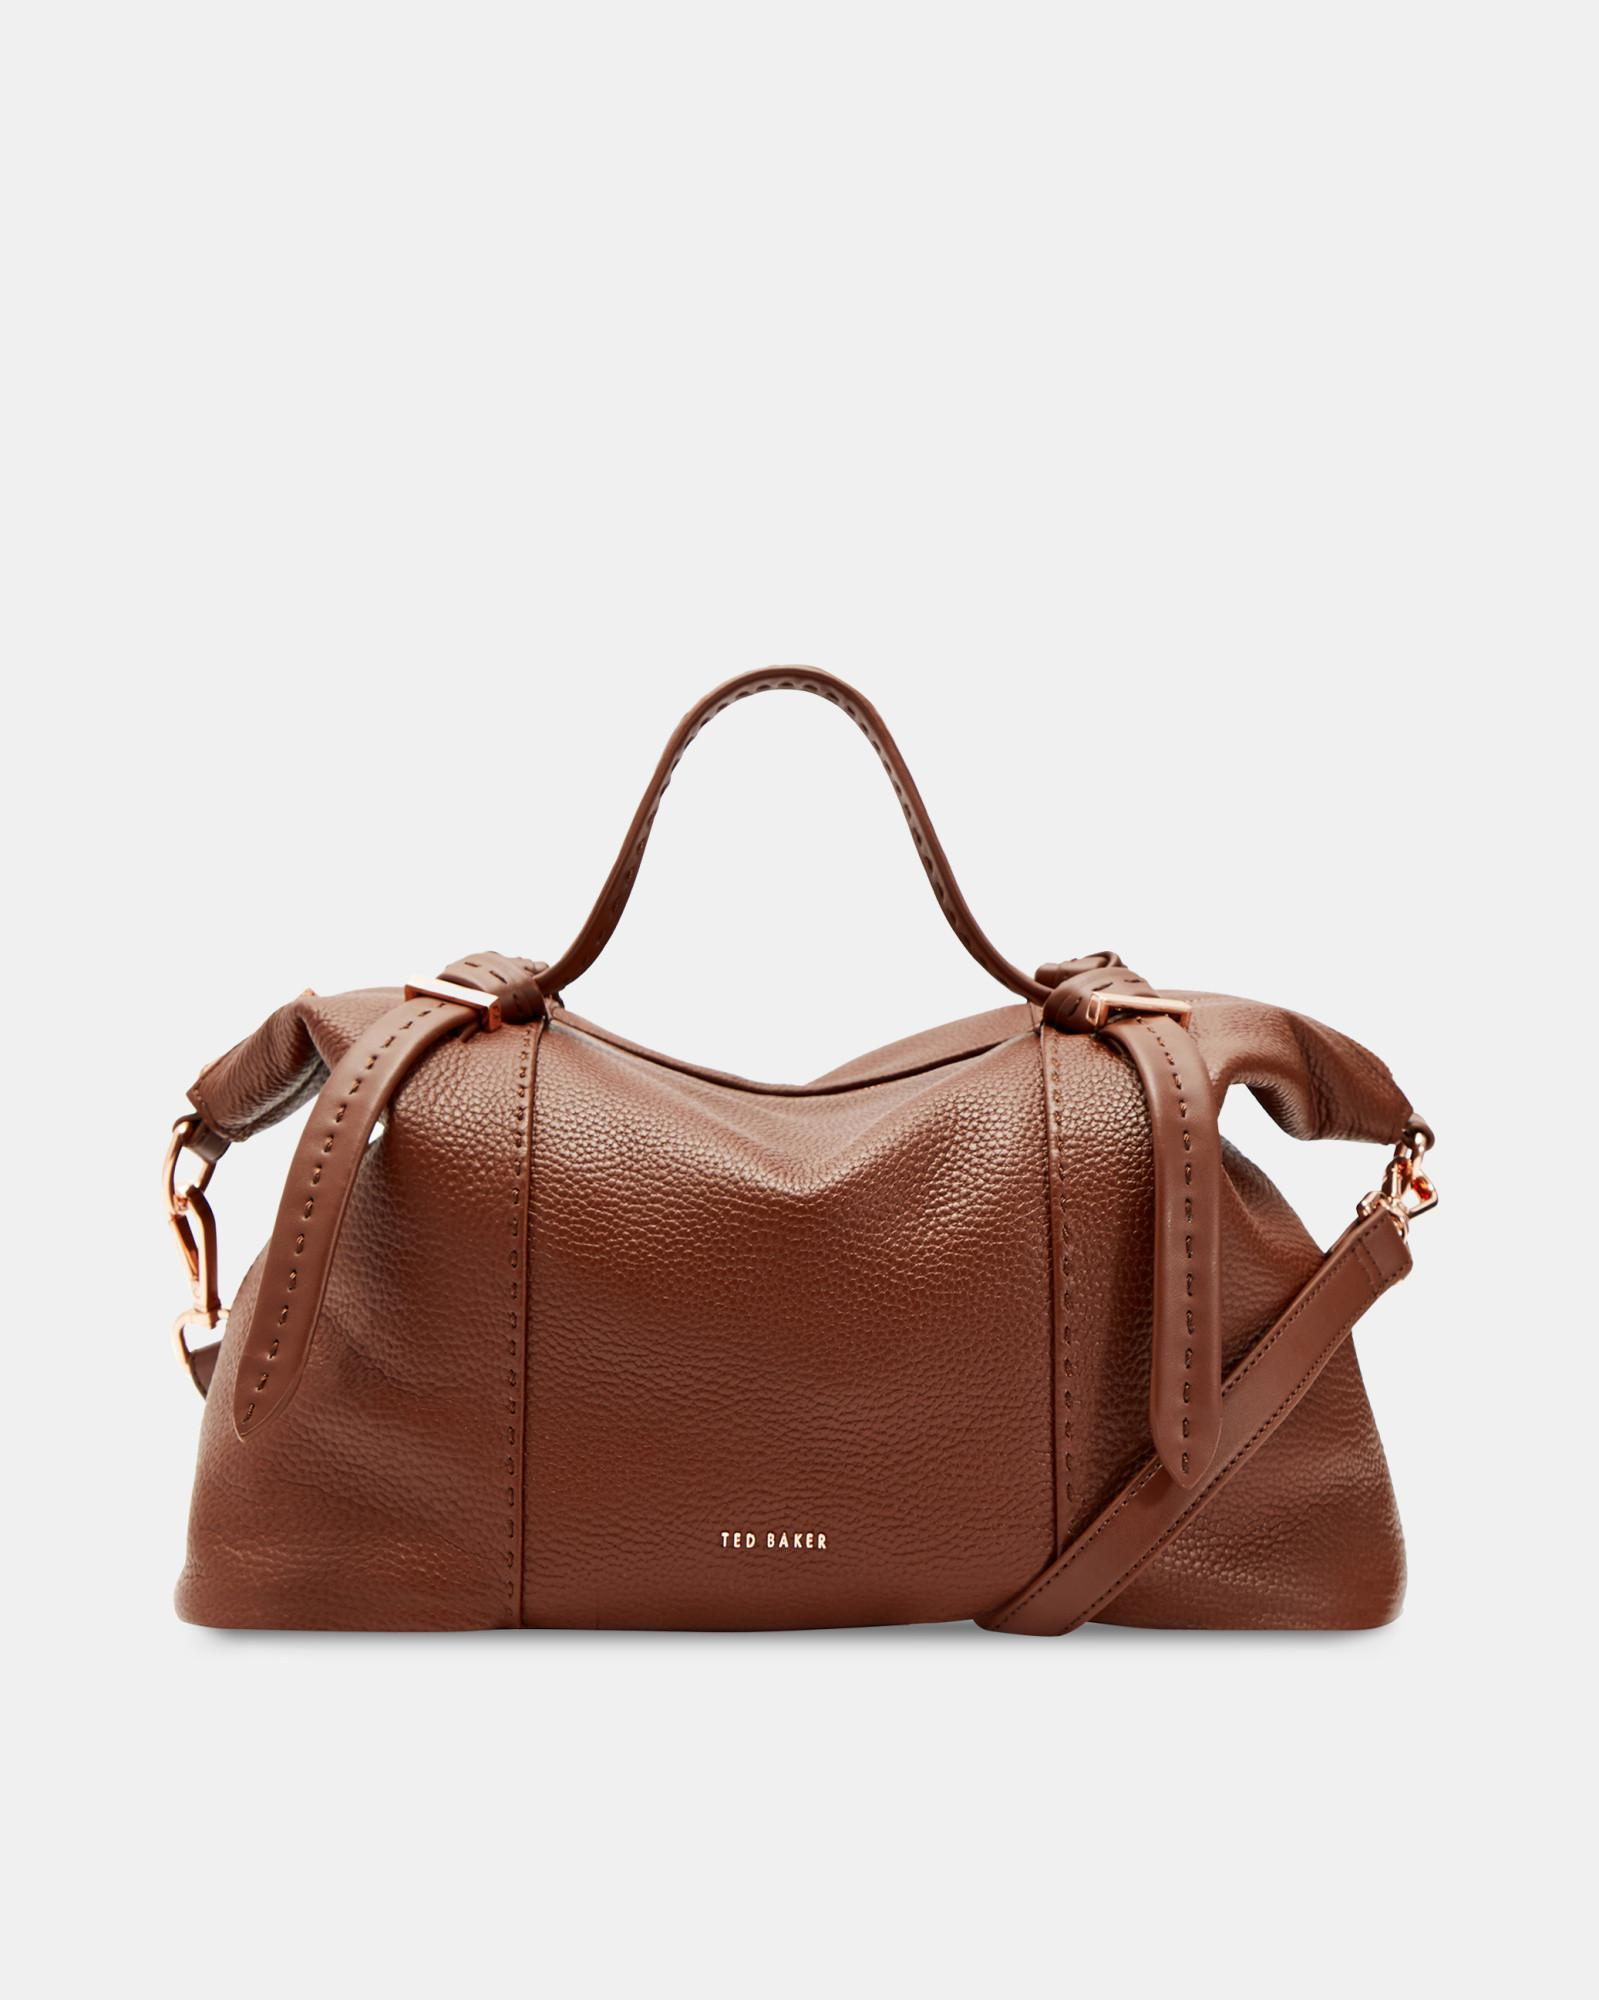 6c08bad3aebf ... Brown Knotted Handle Large Leather Tote Bag - Lyst. View fullscreen